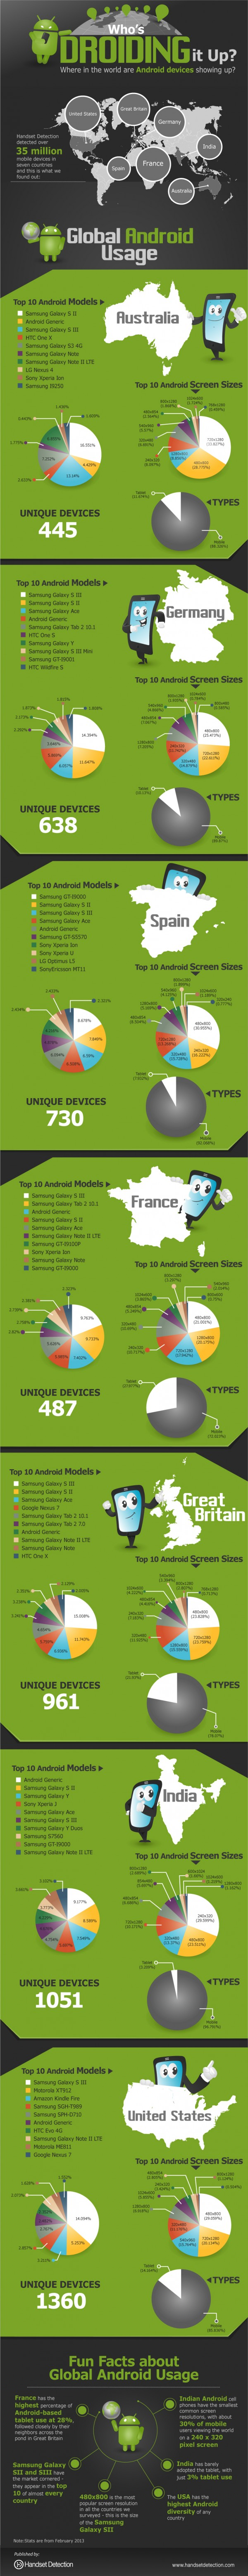 global-android-usage